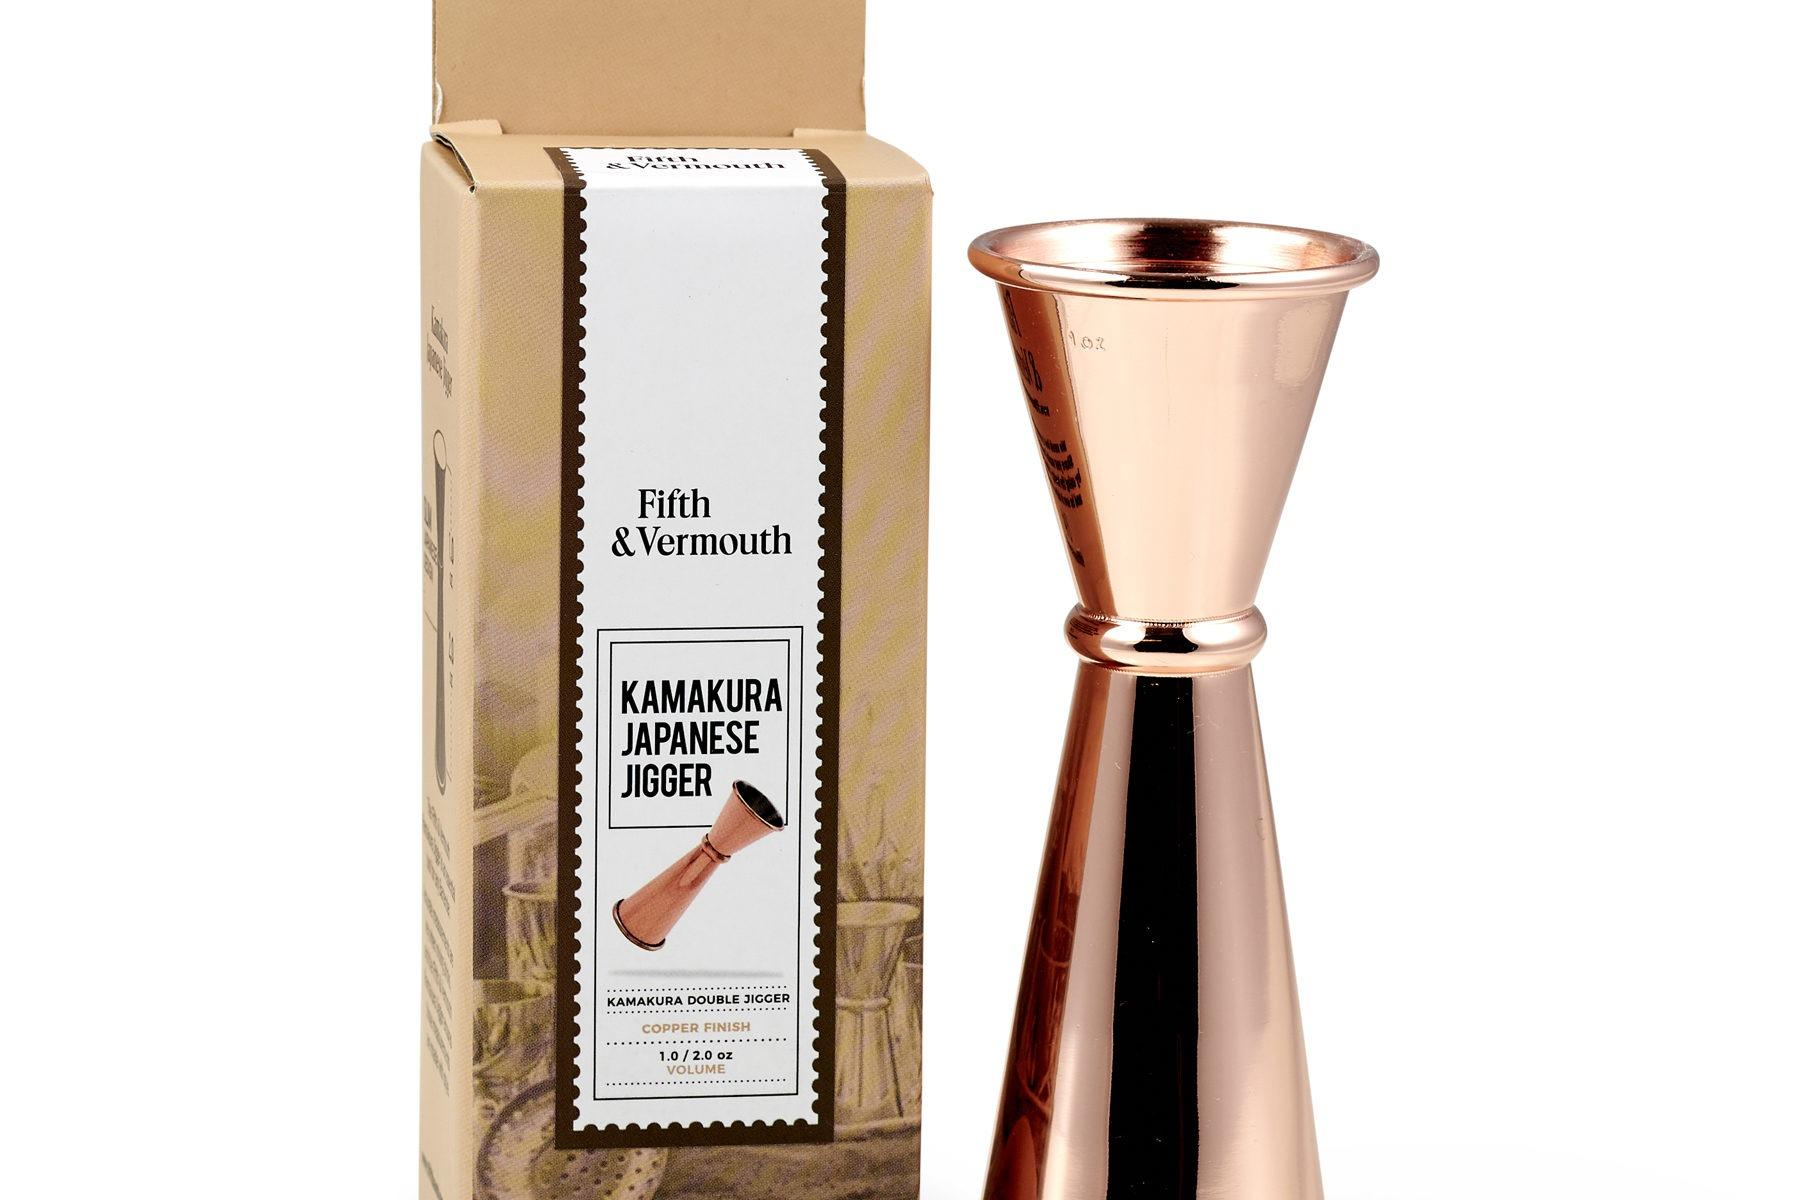 Kamakura Japanese Double Jigger Copper with Package - Fifth & Vermouth